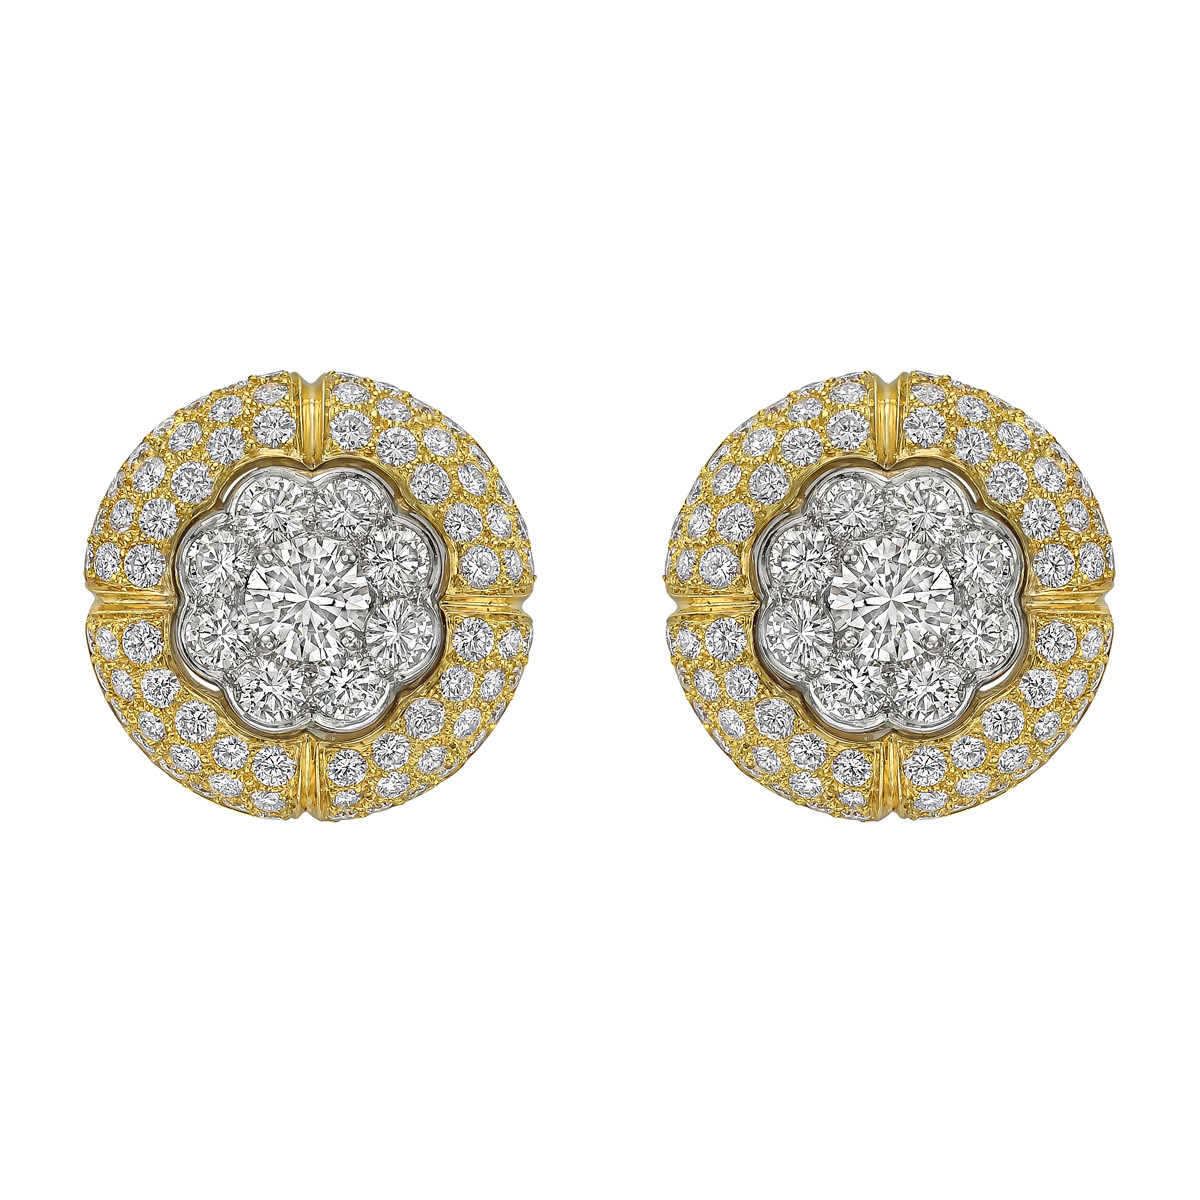 18k White & Yellow Gold Diamond Cluster Earrings